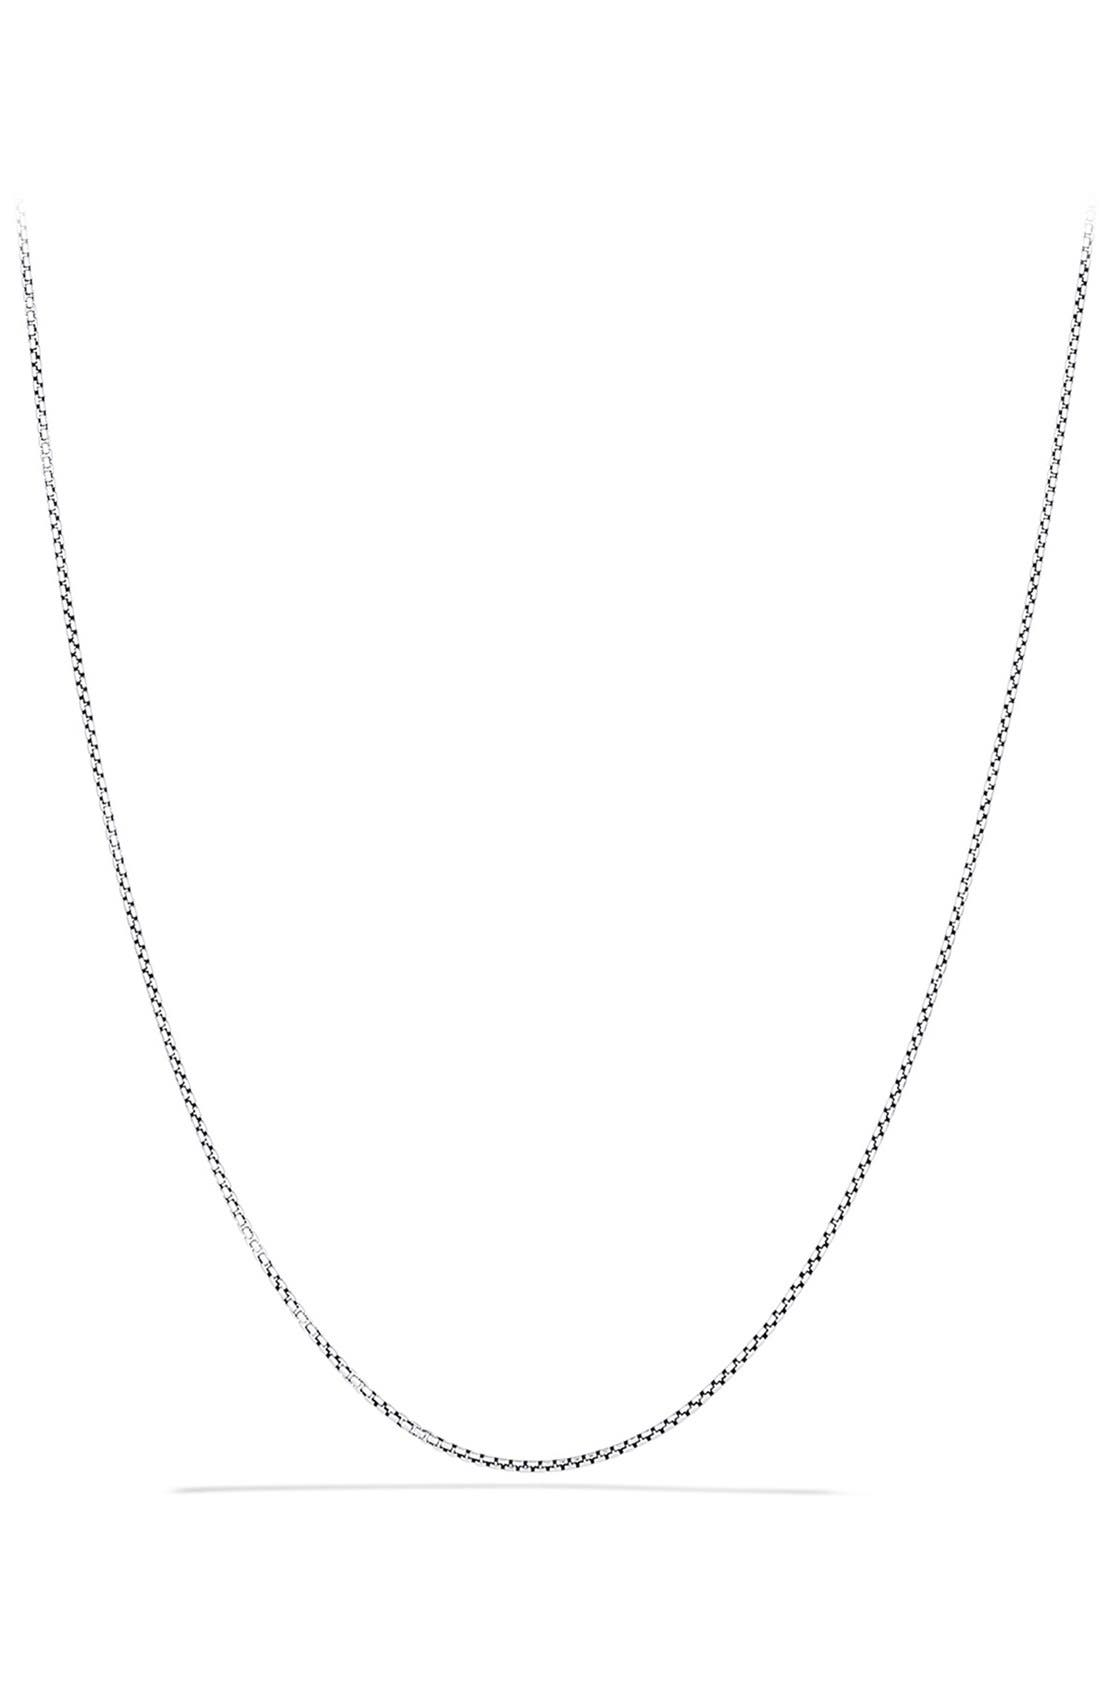 DAVID YURMAN Chain Baby Box Chain Necklace